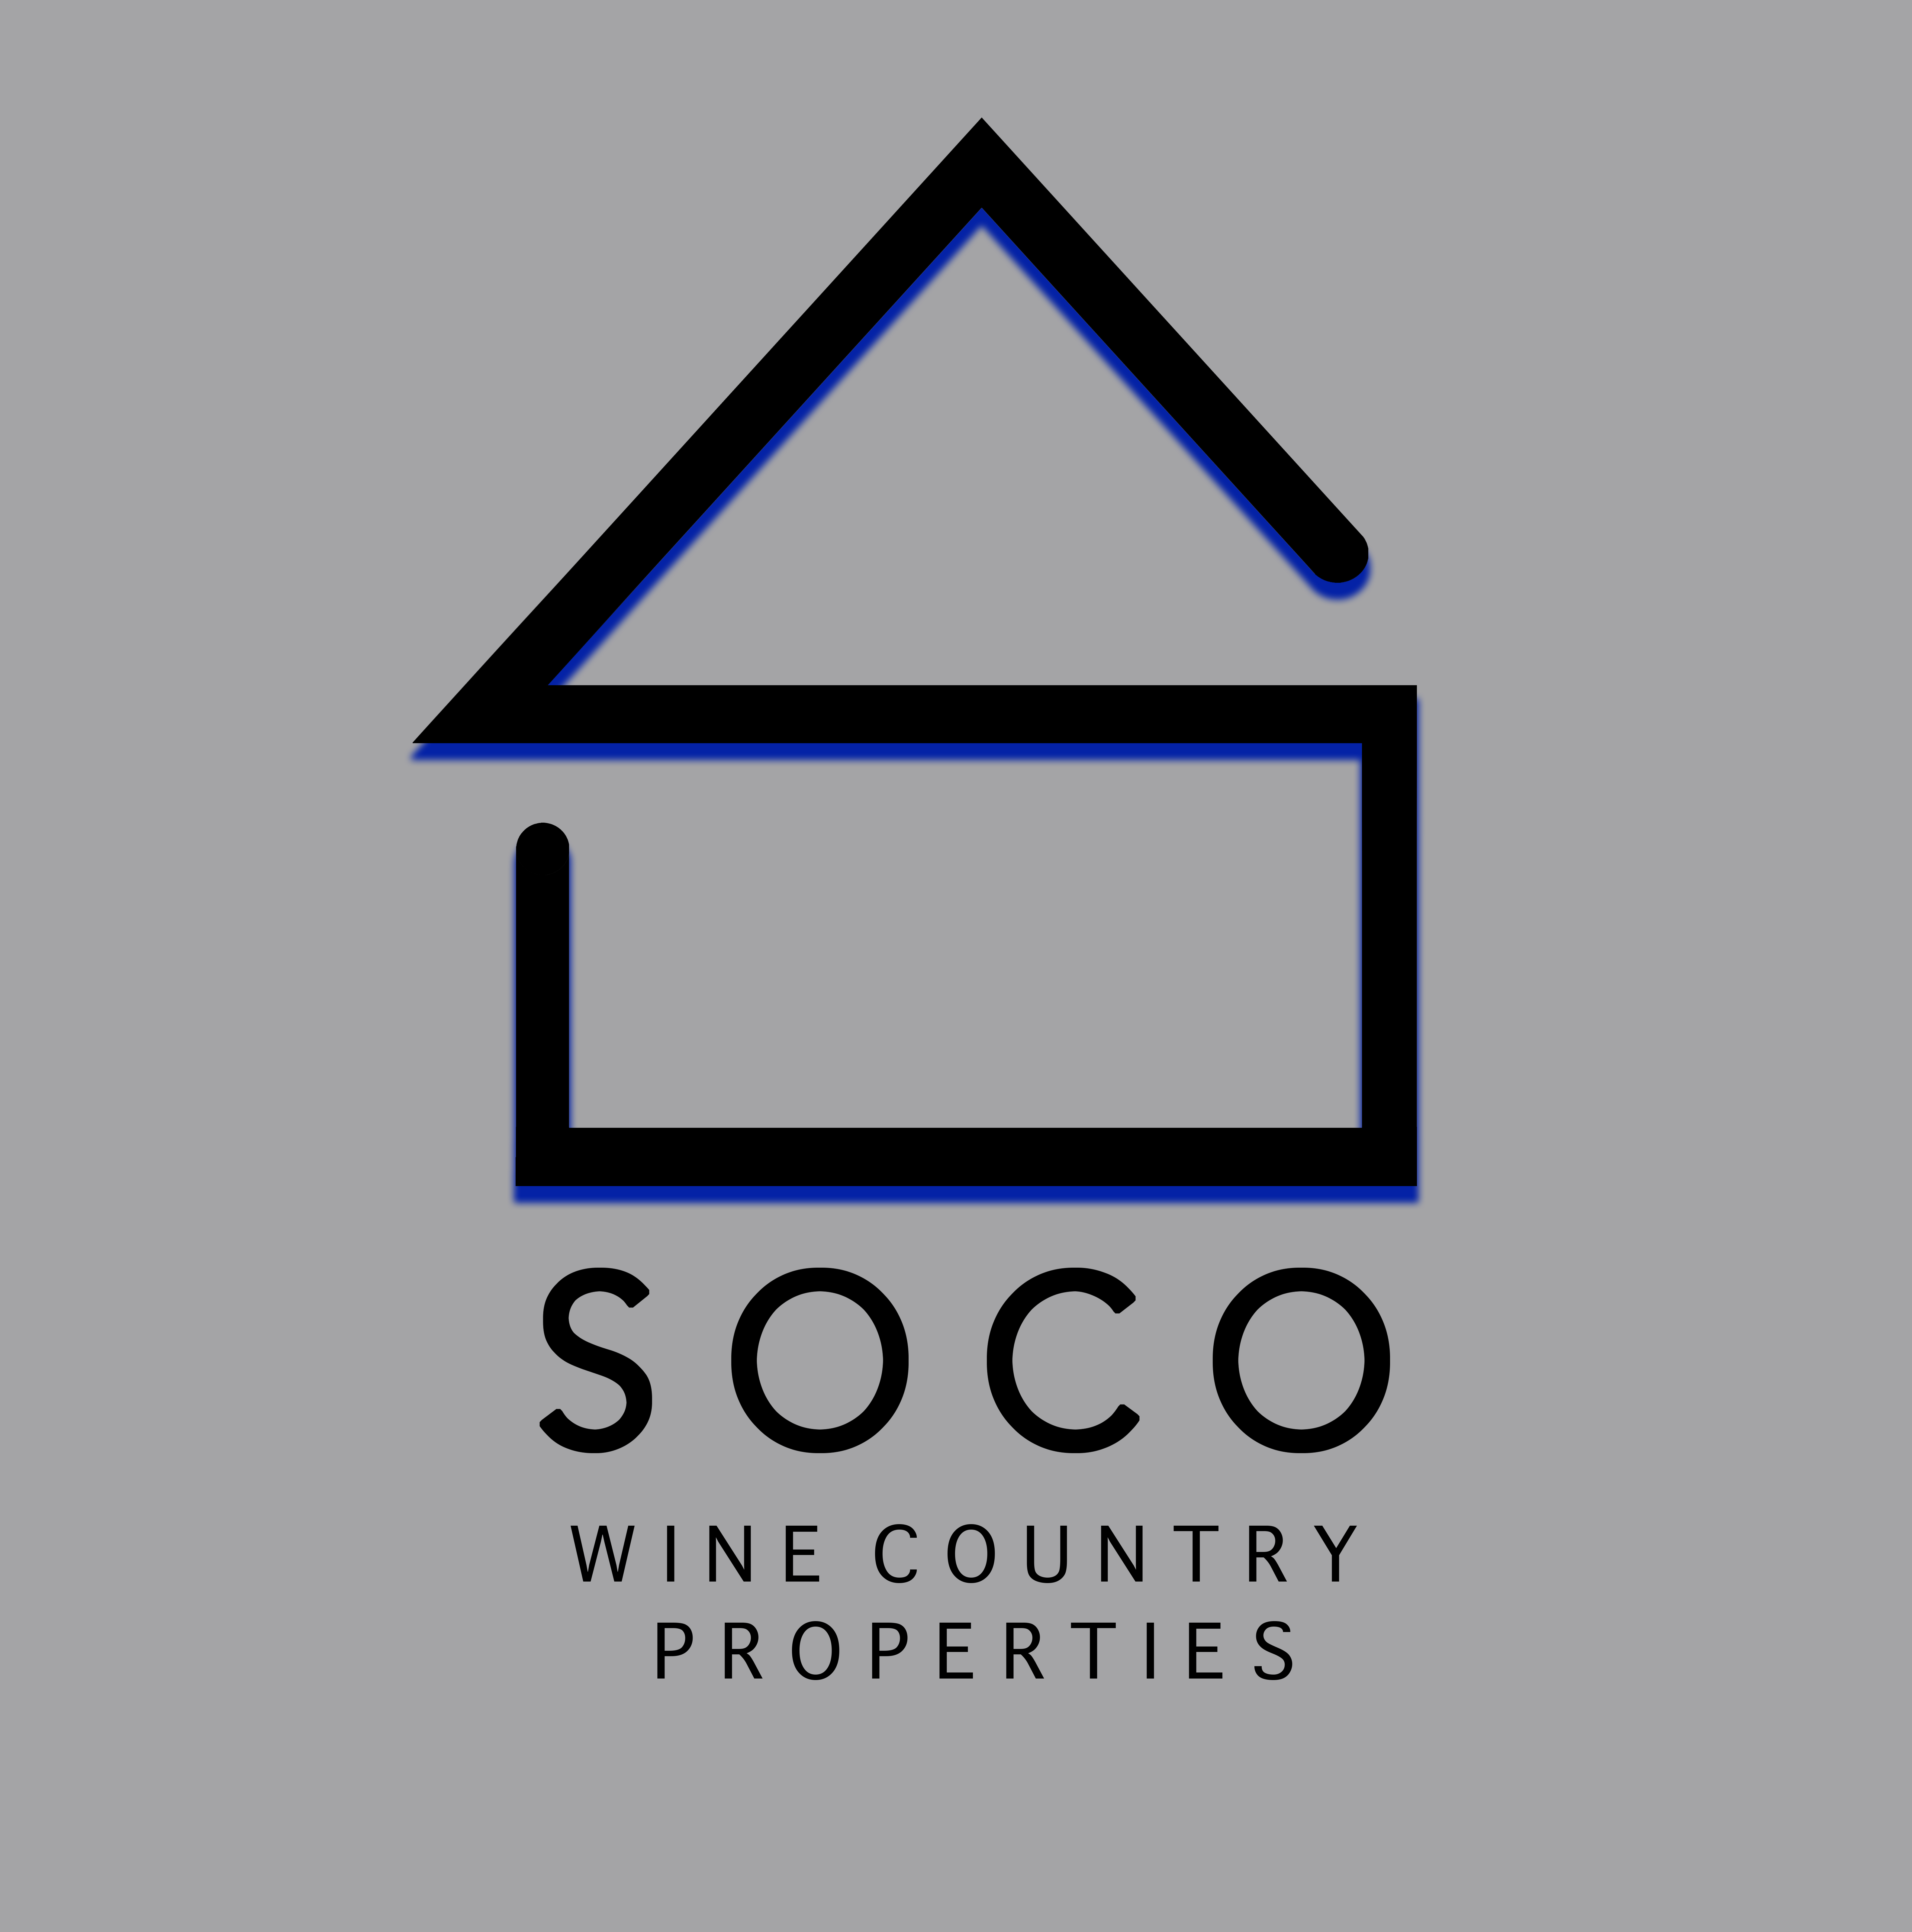 SOCO_logo_final_grey